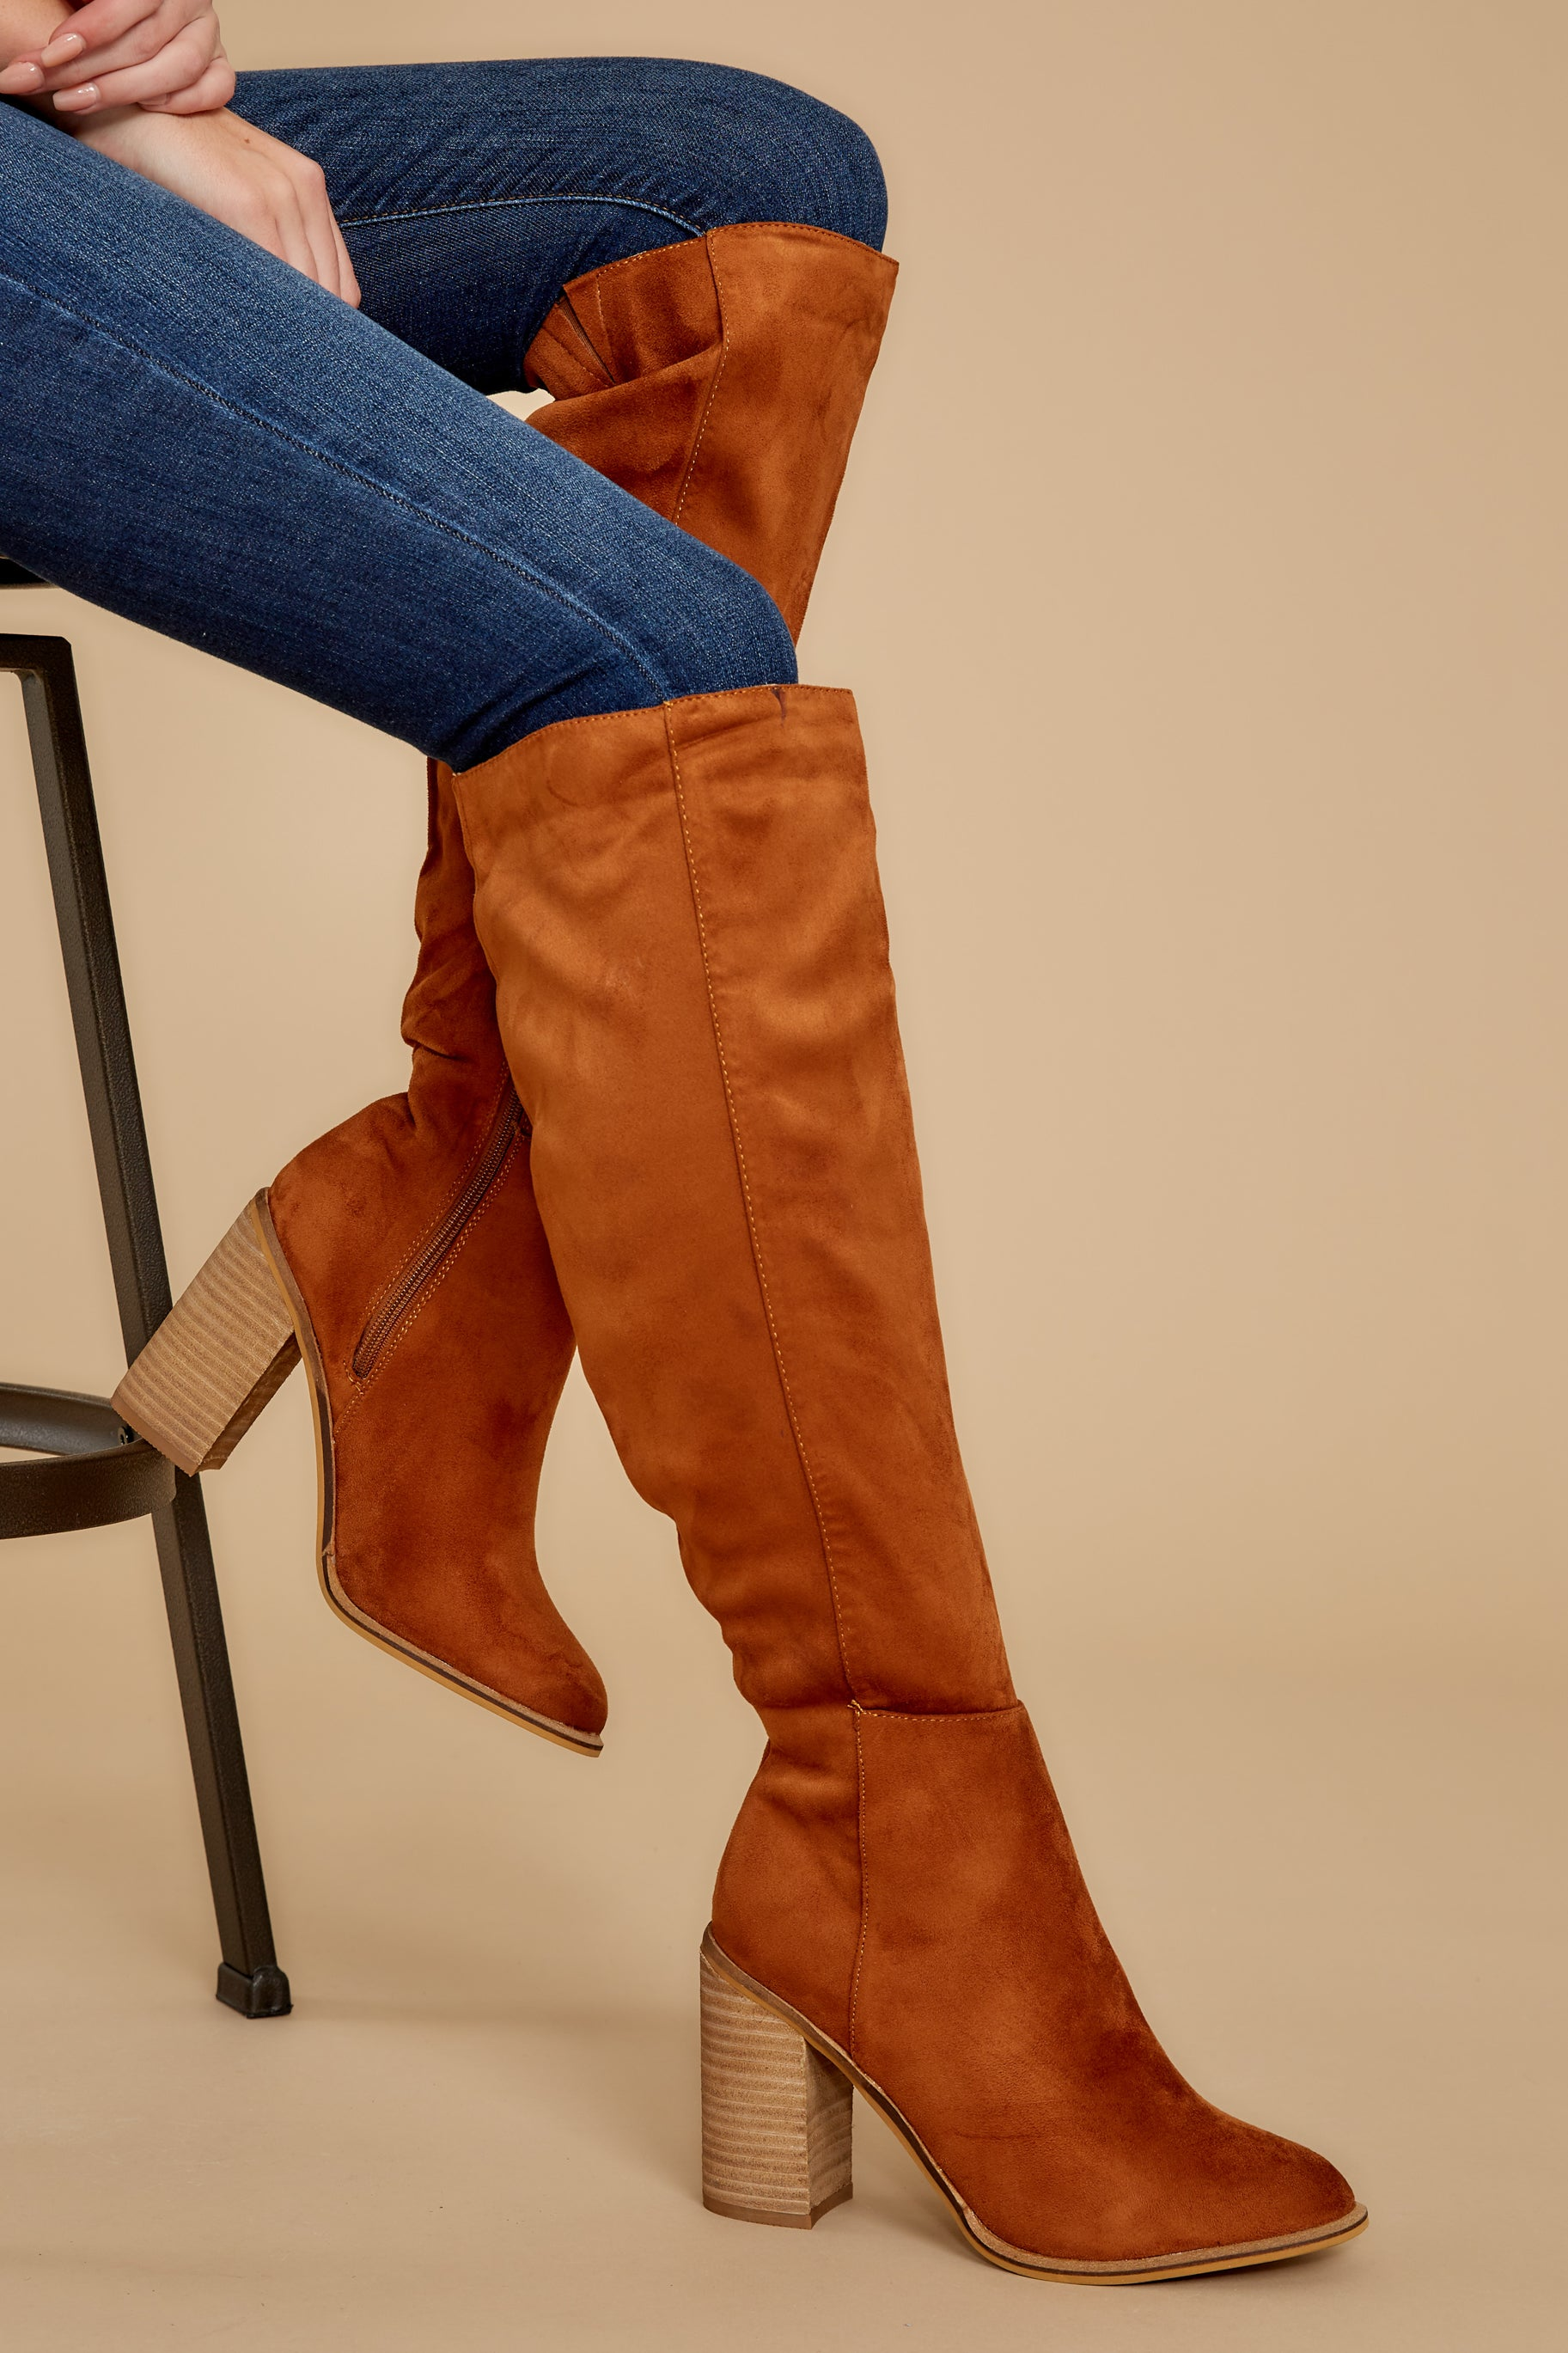 Vintage Boots, Retro Boots Standing Tall Chestnut Boots Brown $66.00 AT vintagedancer.com